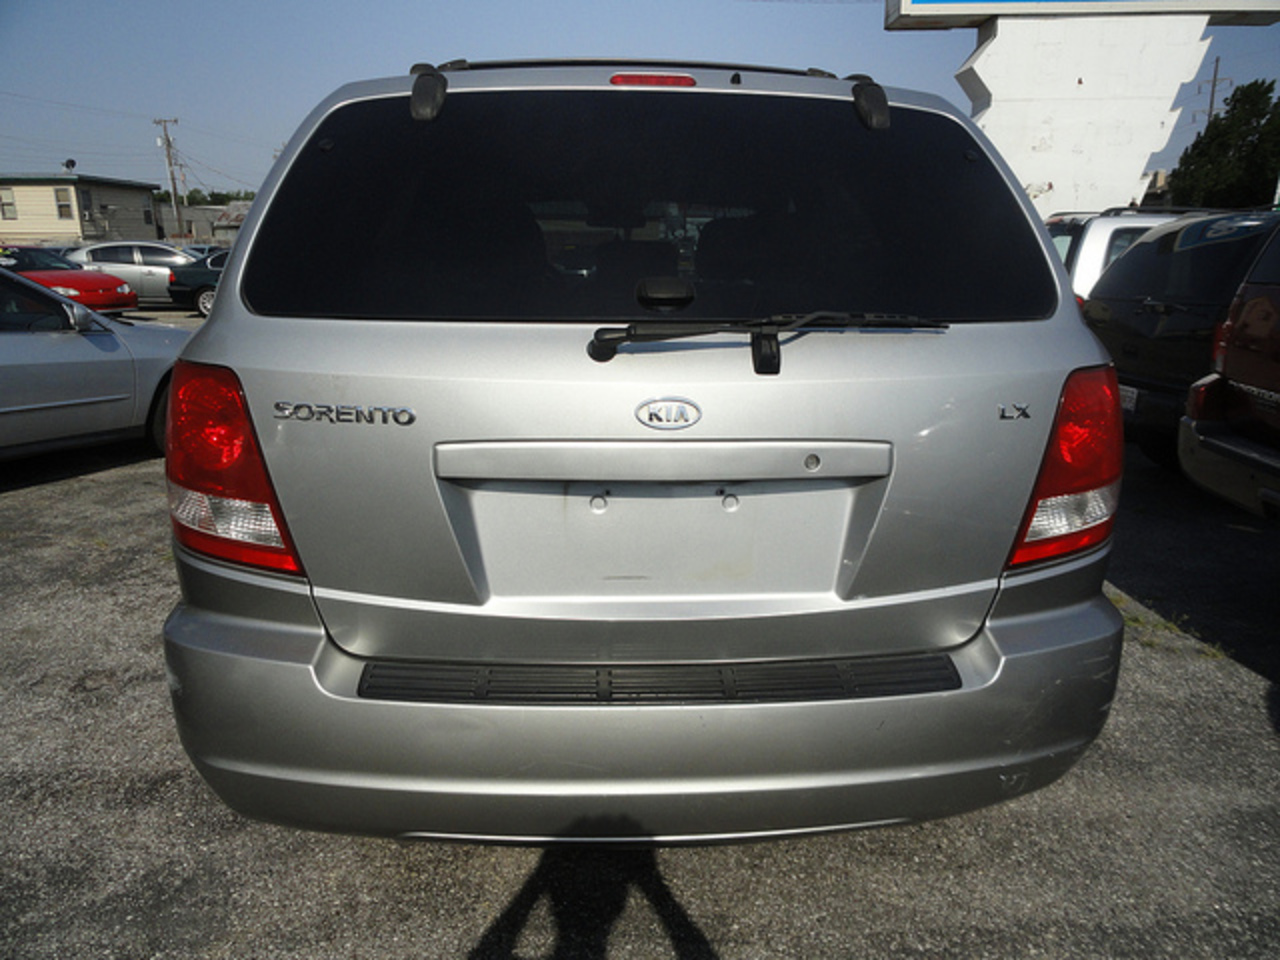 KIA Sorento LX Back | Flickr - Photo Sharing!